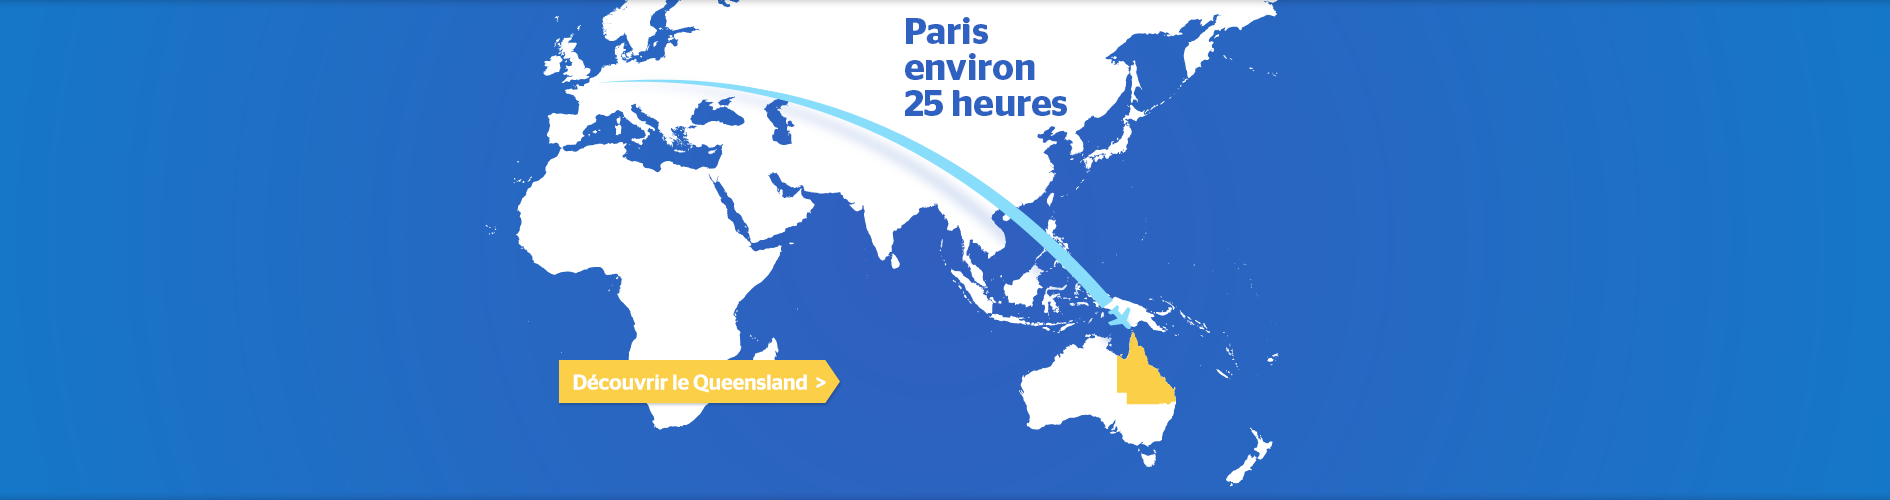 Paris to Australia Flight Map